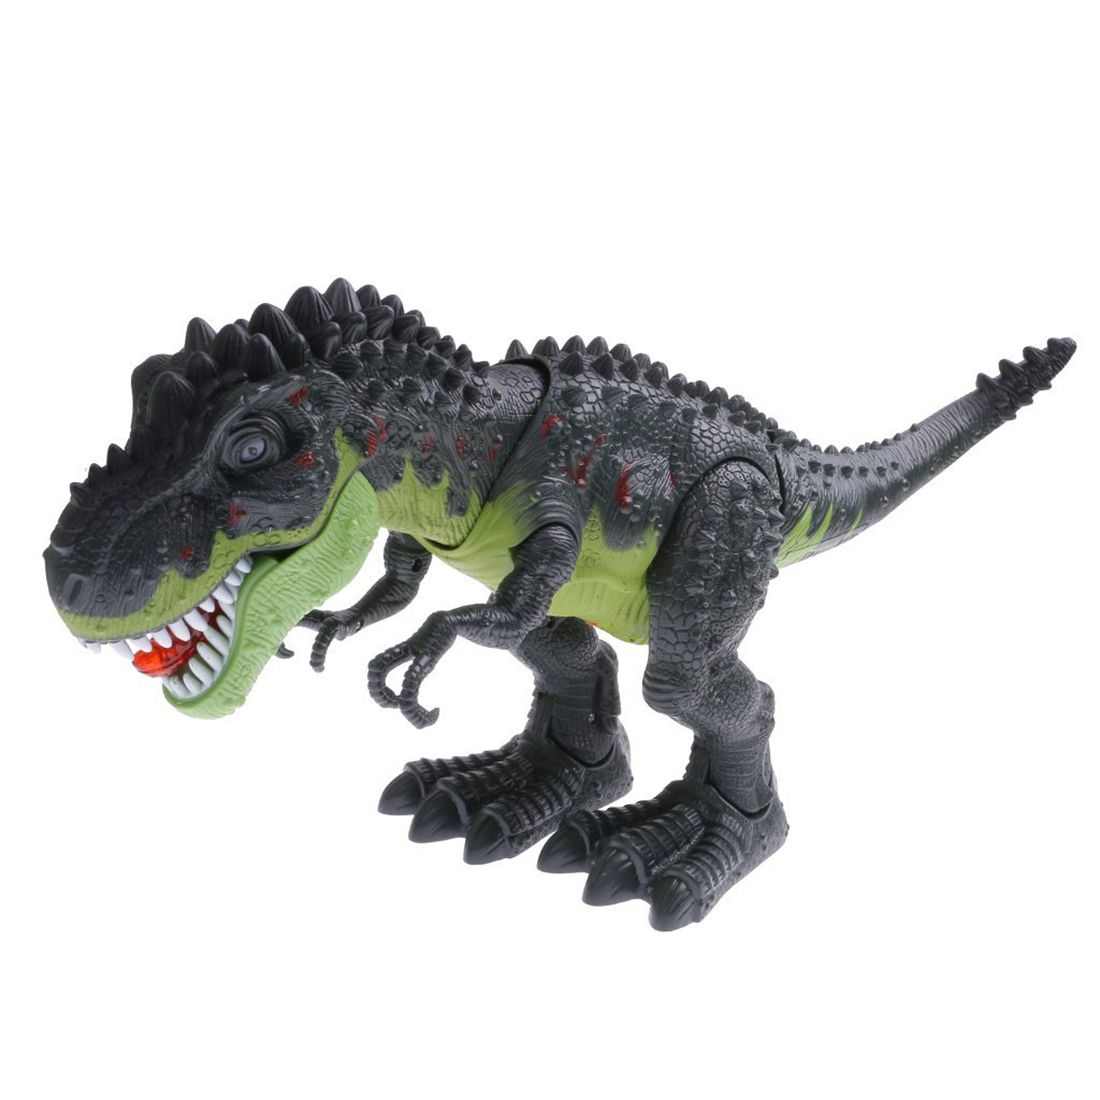 Cool Robots Walking Dinosaur Toy Simulation Animal Robot With Shaking Head Growling Sound Flashing Light Moving Leg Gift For Kid